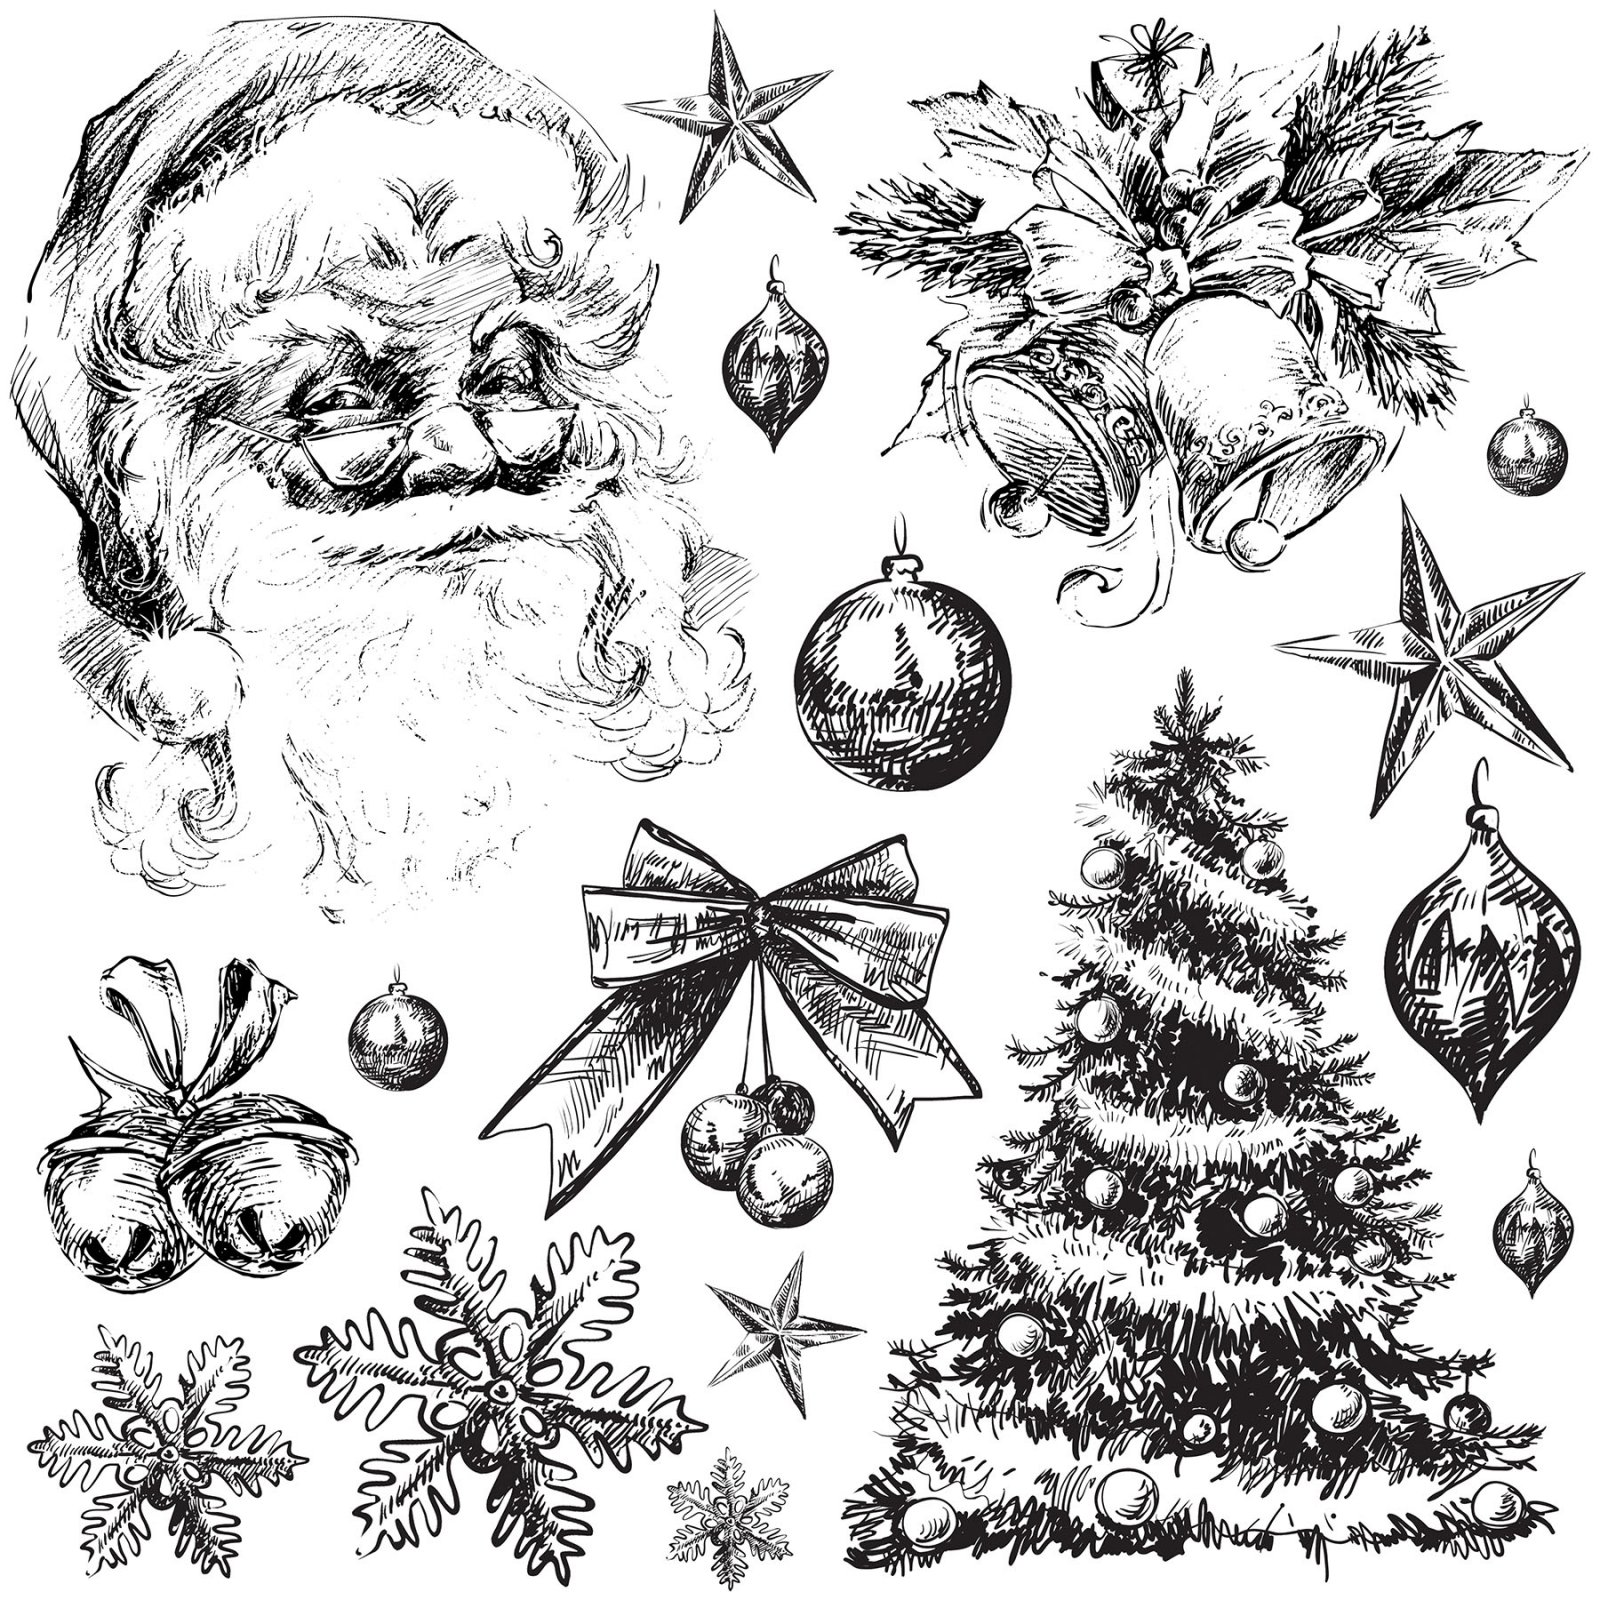 Holly Jolly 12x12 IOD Stamp